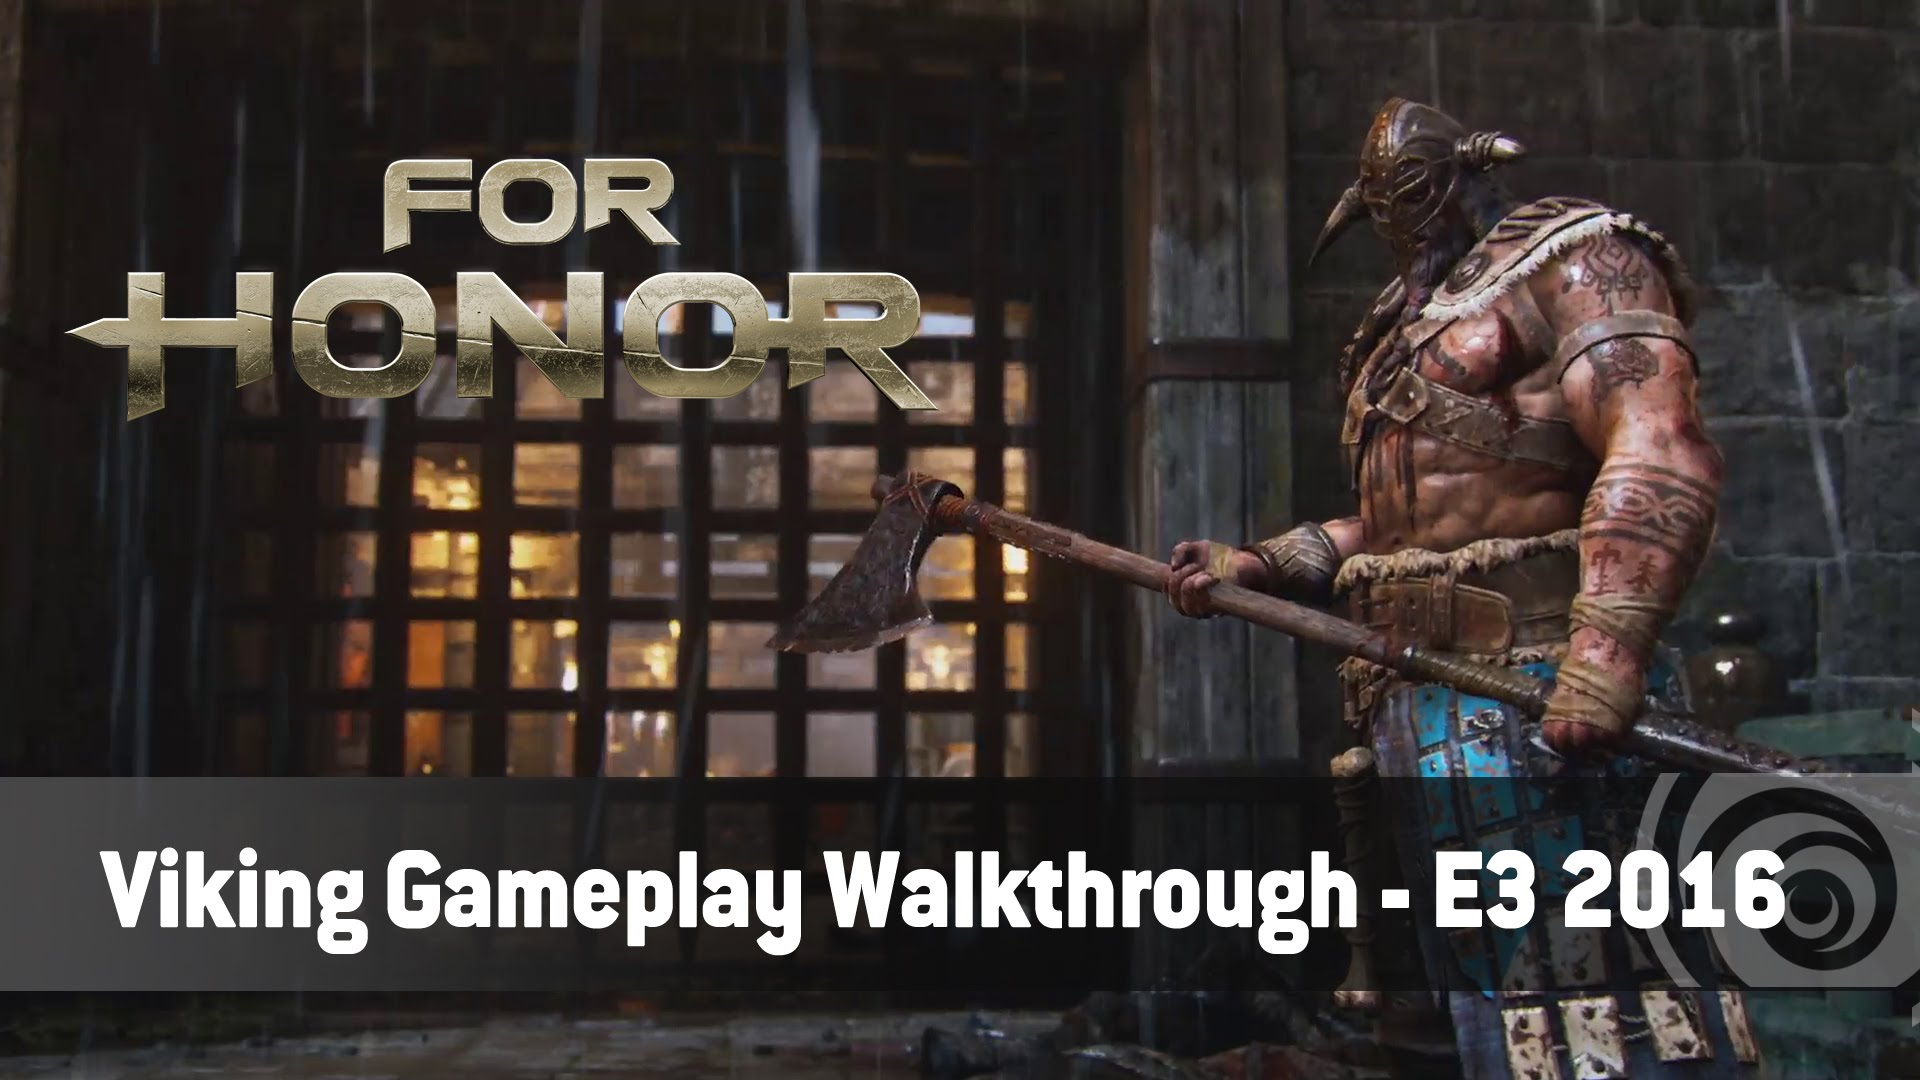 For Honor – Viking Gameplay Walkthough Trailer - E3 2016